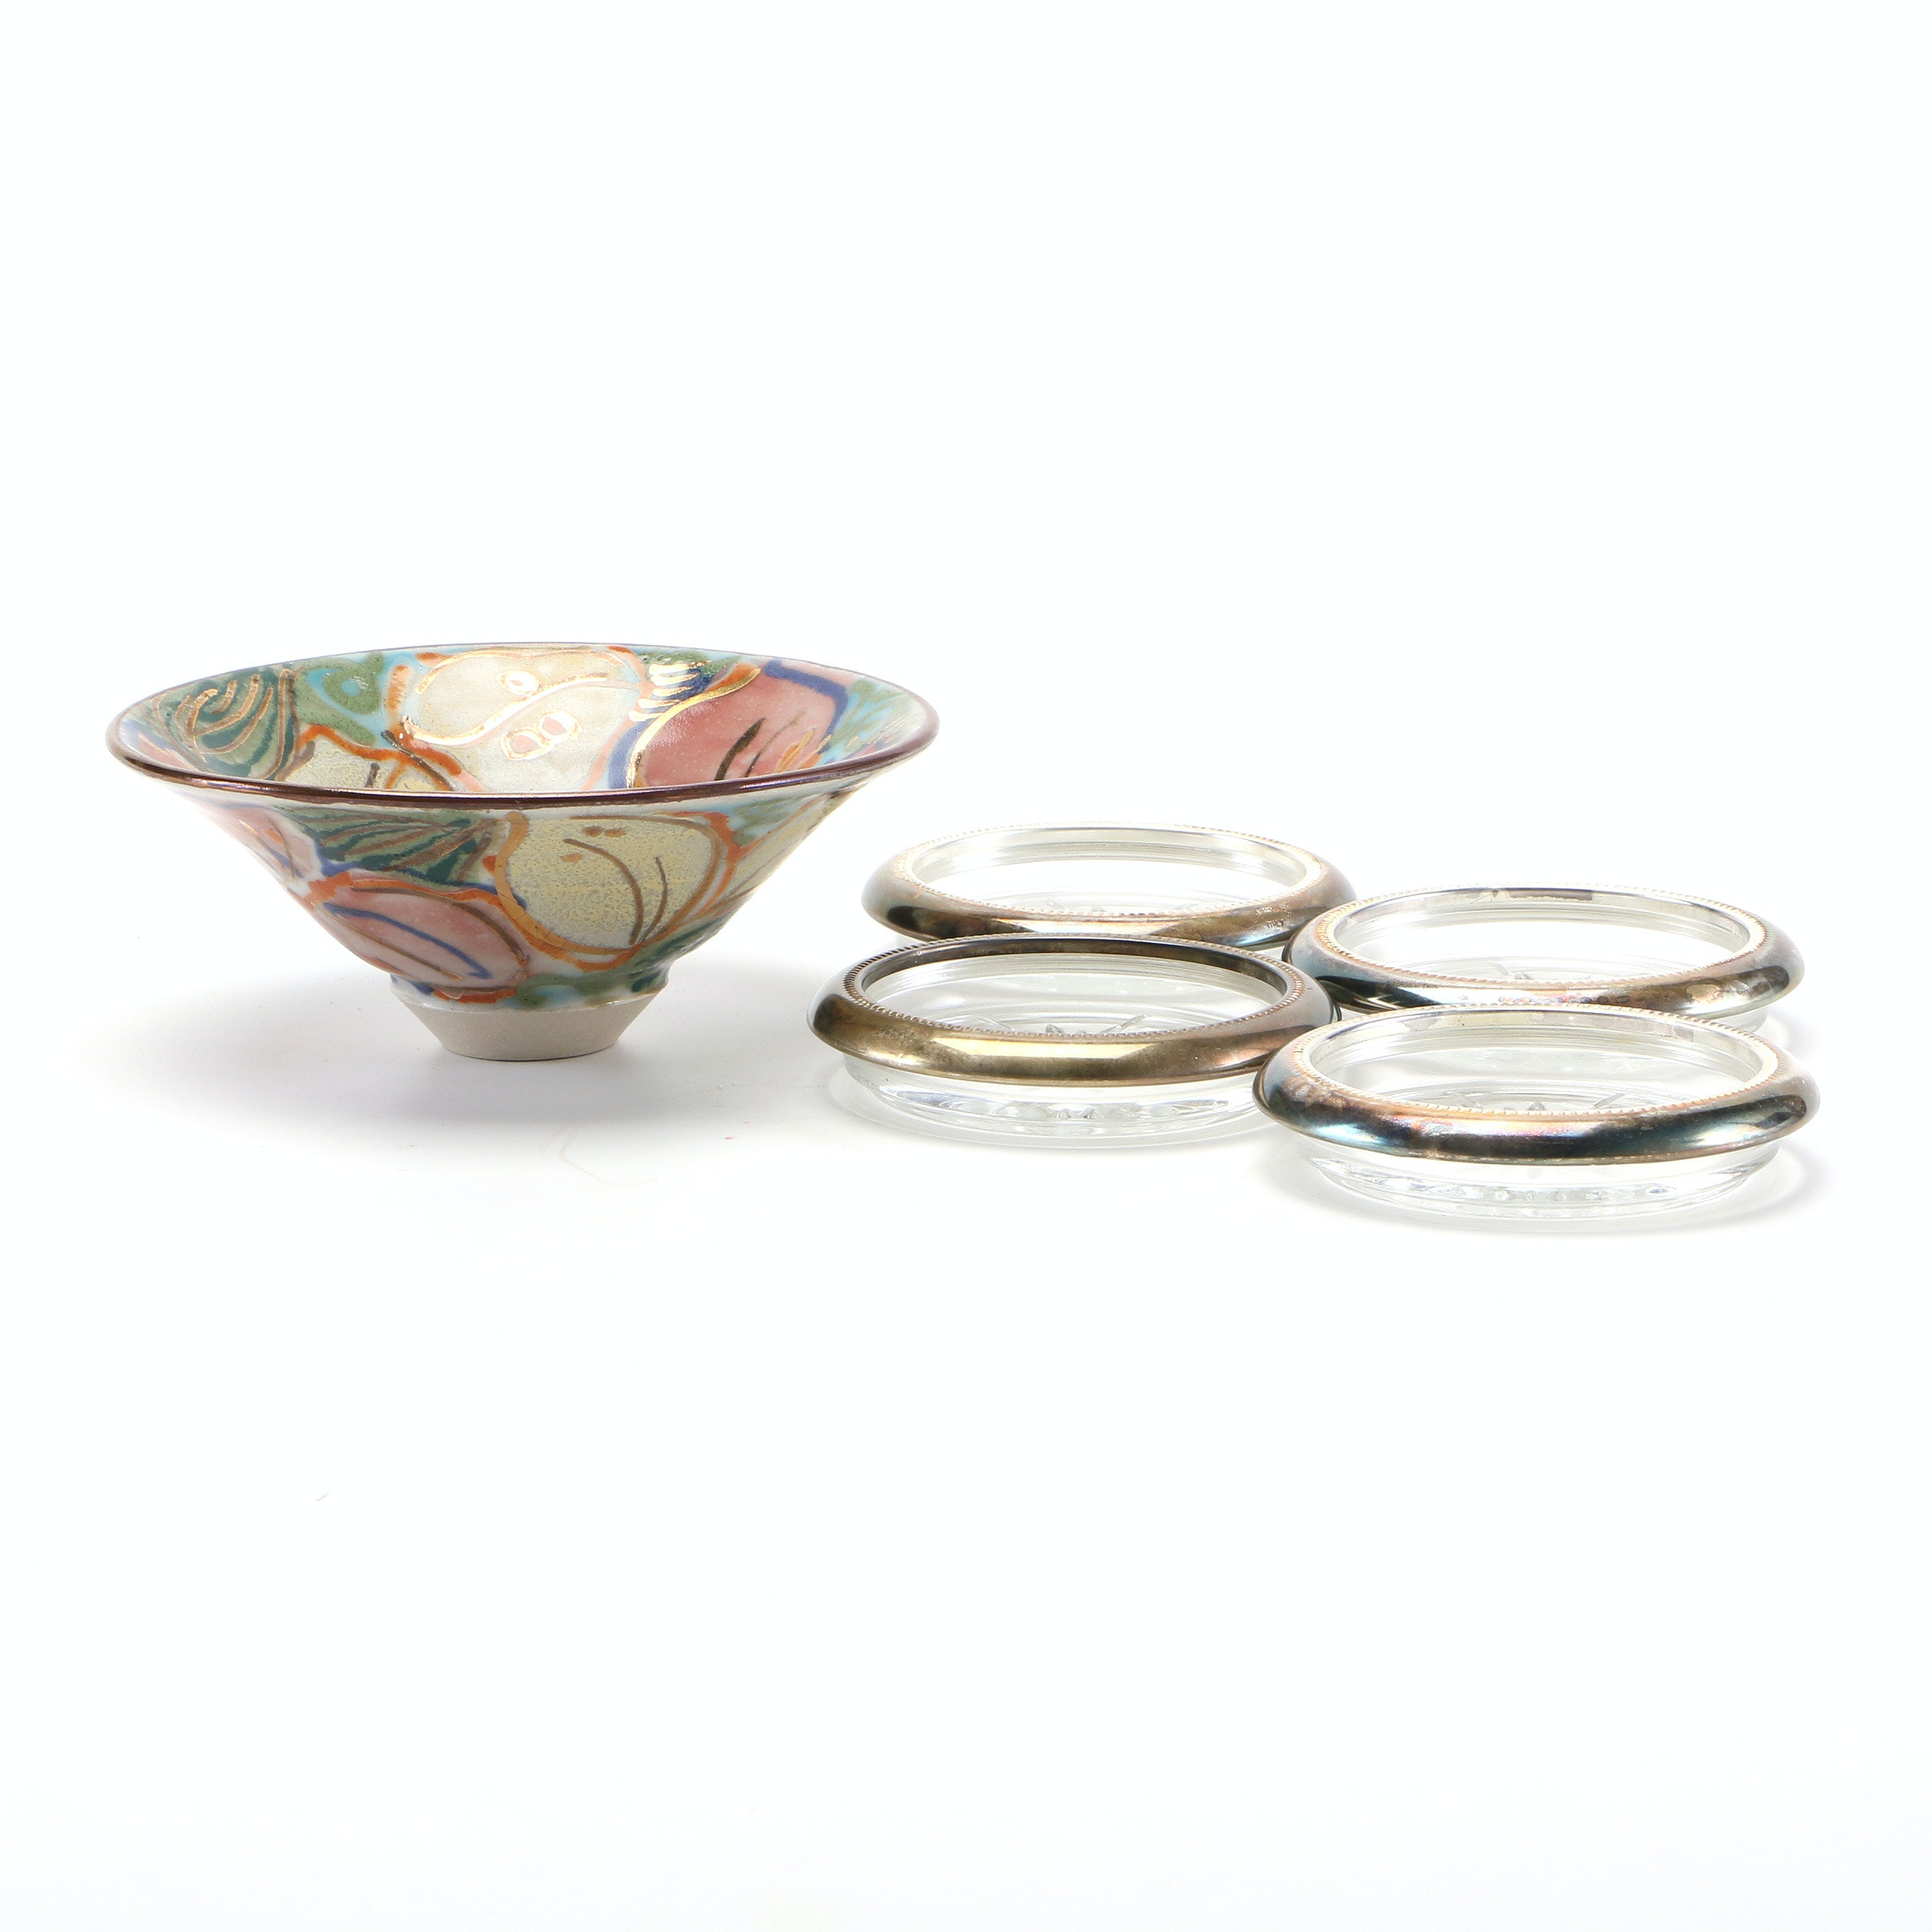 Glass and Silver Plate Coasters and Earthenware Pottery Bowl